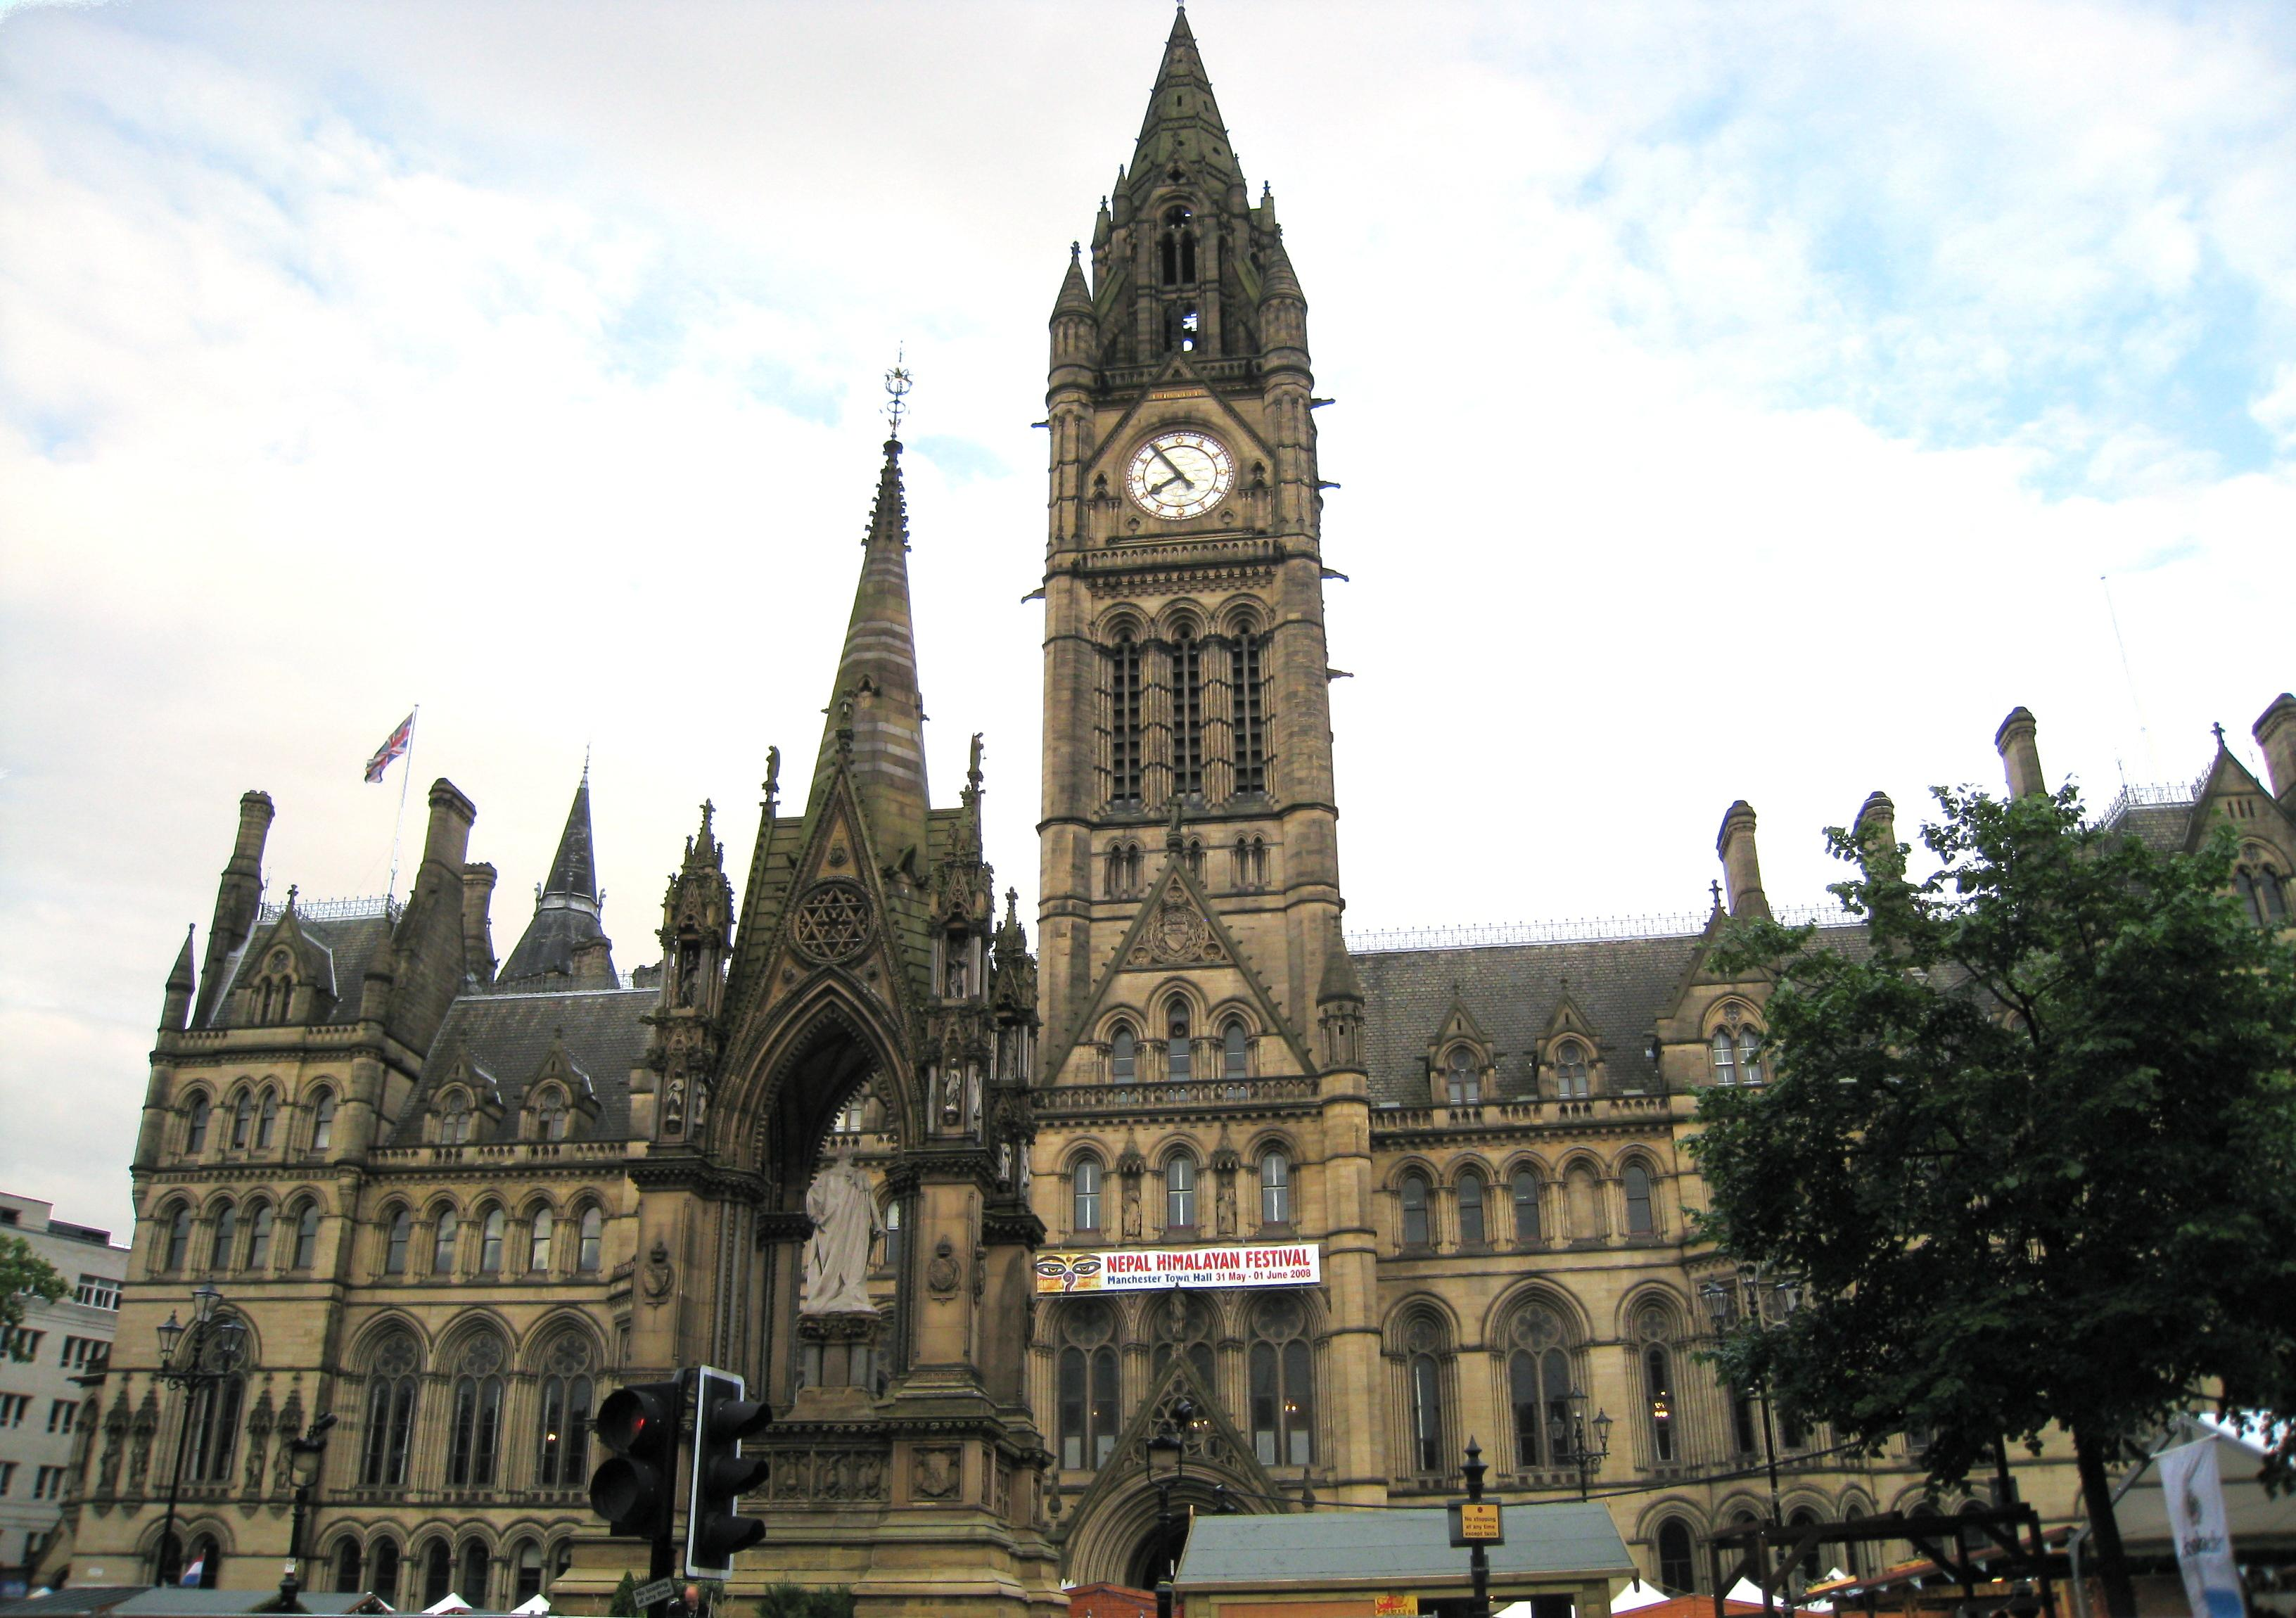 Manchester Town Hall A Neo Gothic Architectural